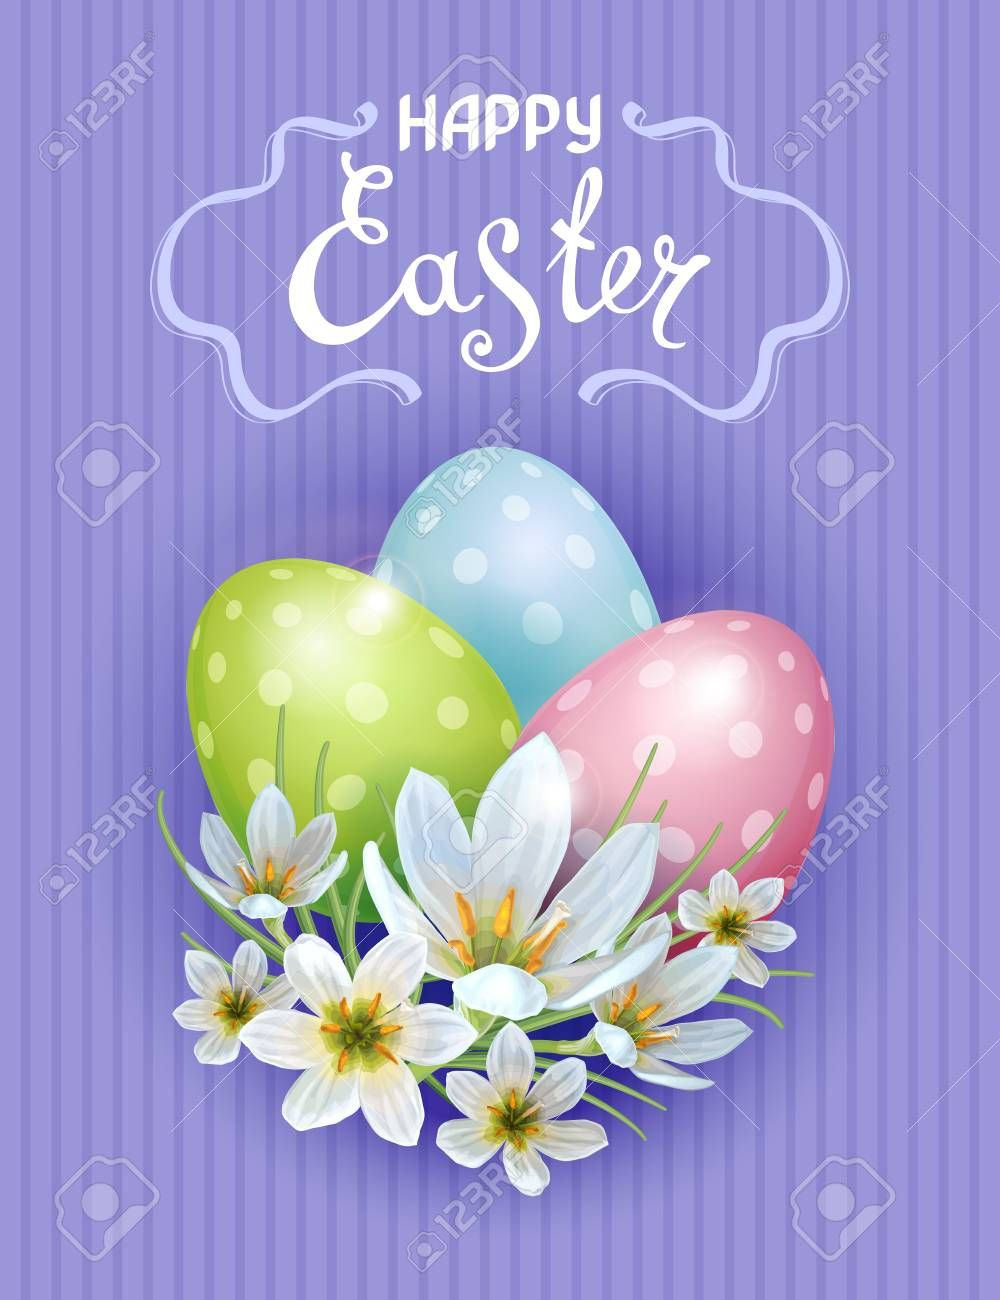 Templates For Easter Cards Calep Midnightpig Co Within Easter Card Template Ks2 Business Professional Temp Easter Cards Pop Up Card Templates Card Template